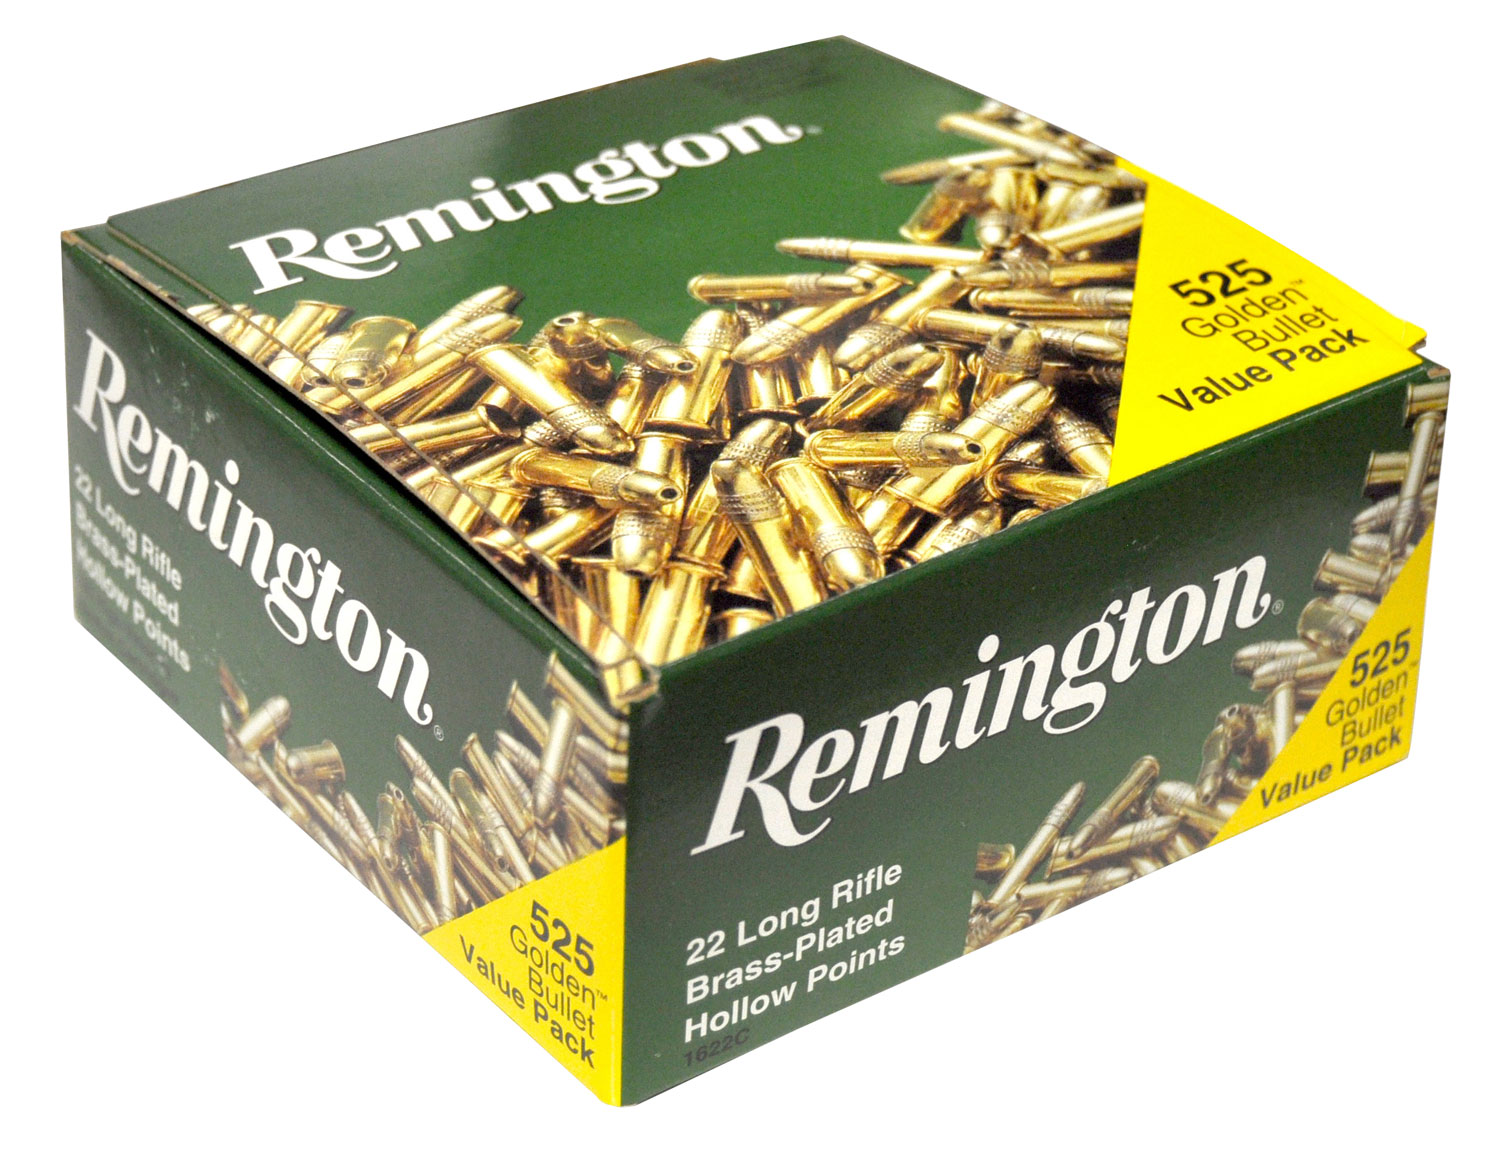 Rem Ammo 1622C 22LR 36GR Plated Hollow Point (6300rds total) 525Bx/12Cs